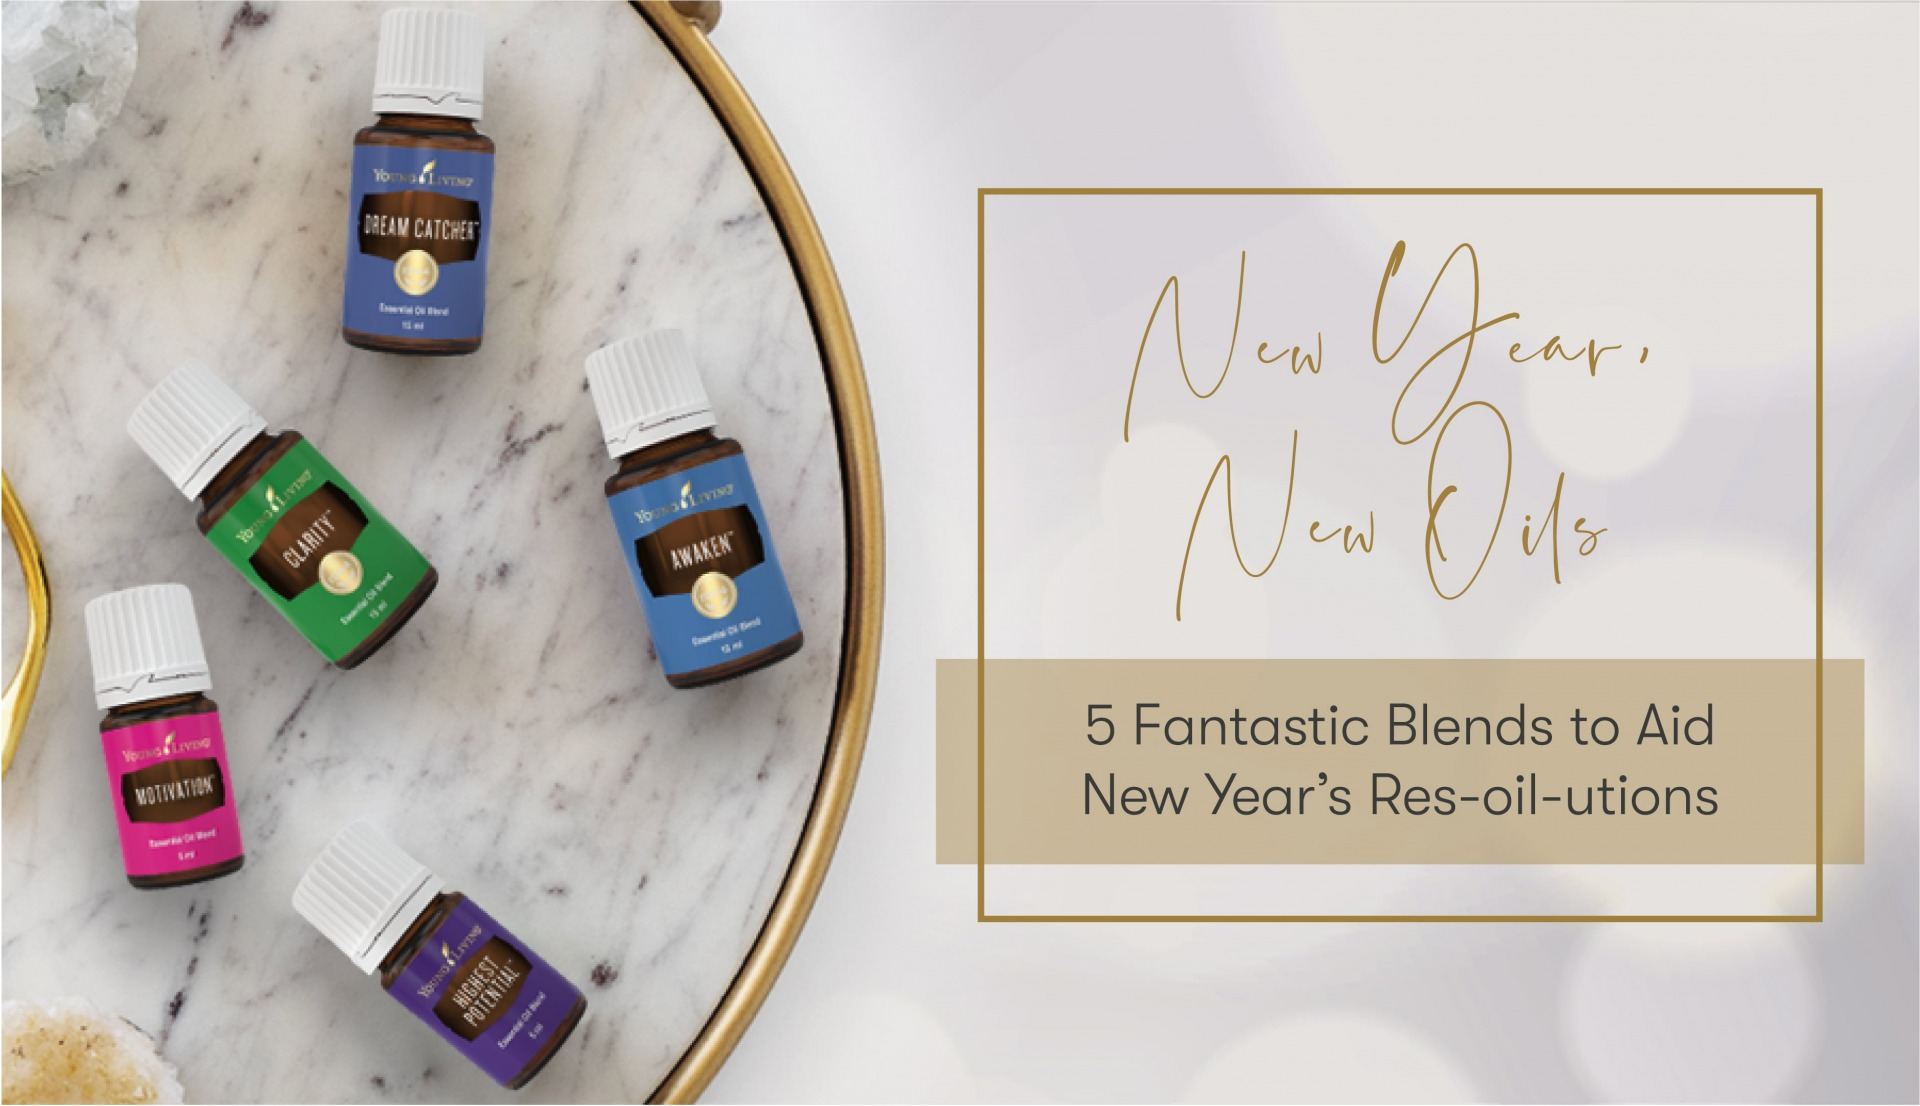 New Year New Oils 5 Fantastic Blends to Aid New Year's Res-oil-utions